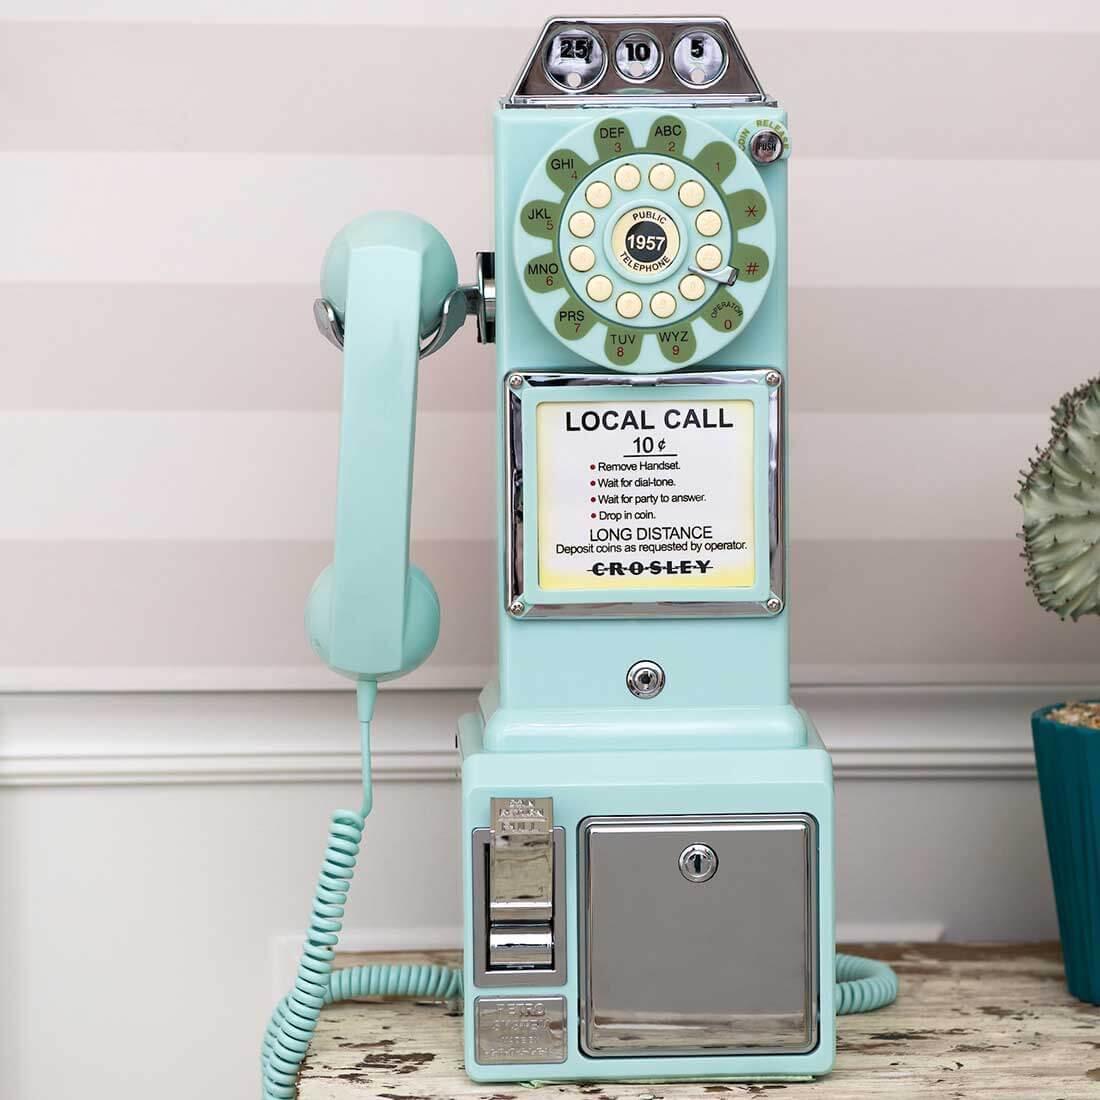 Teal 1950's Pay Phone